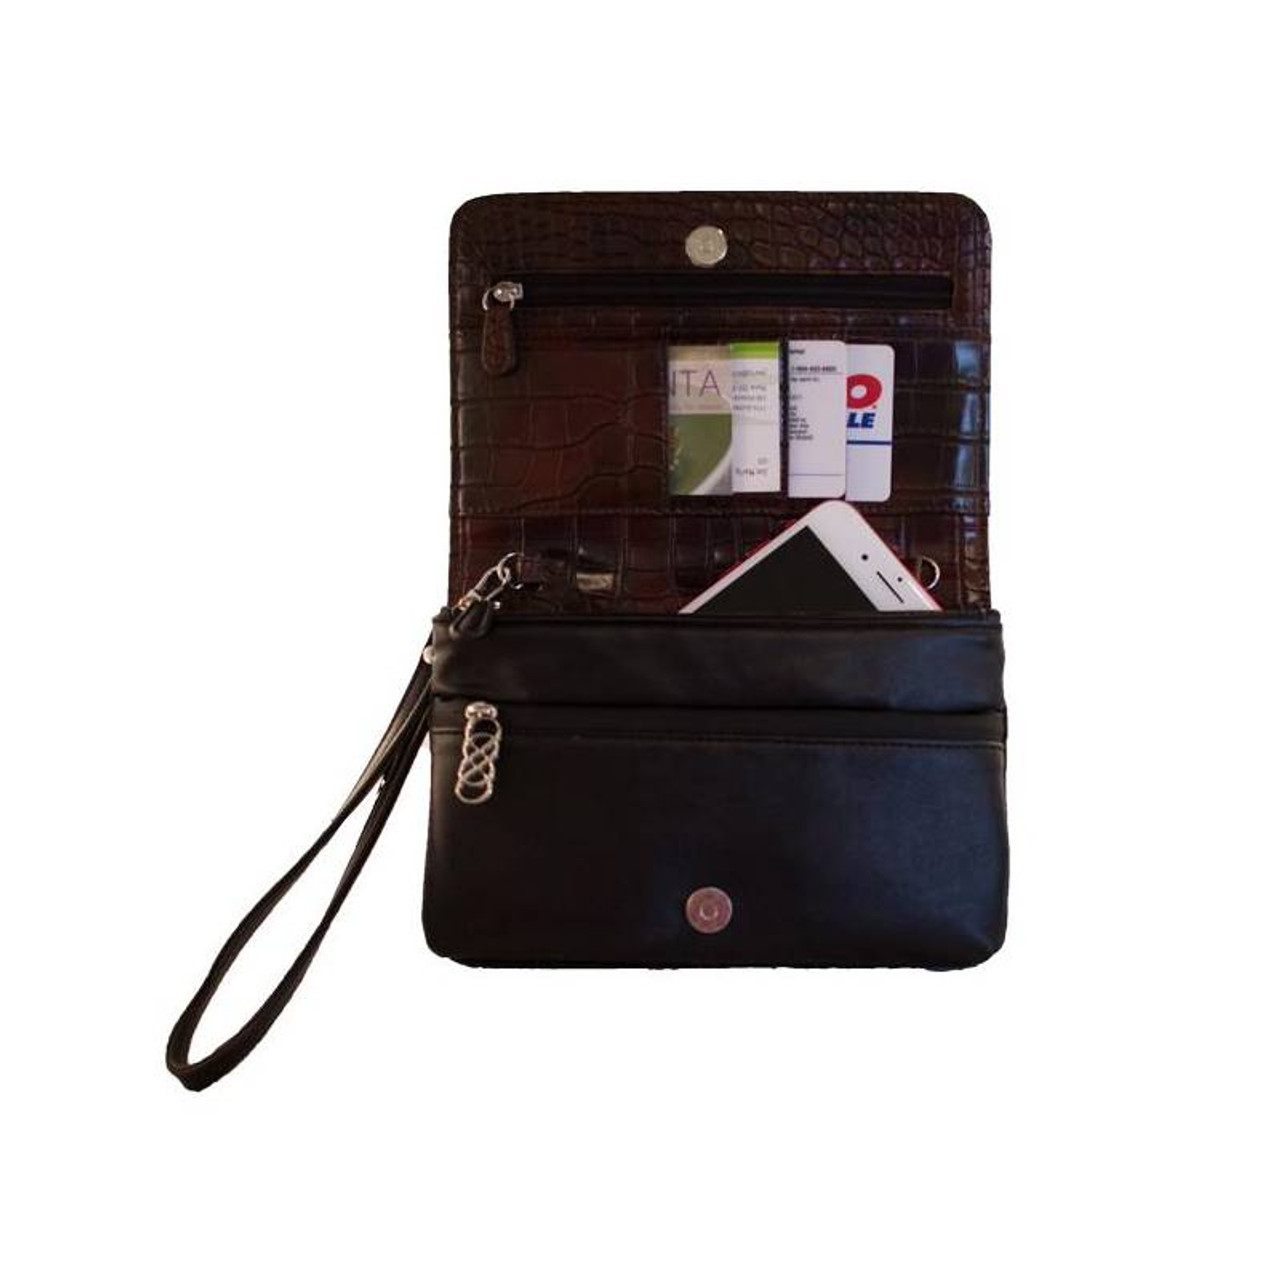 """Erbanna Smell Proof Bag with both Crossbody and Wristlet Strap - KAM - 7.5"""" x 5"""" x 1.5"""" - Colors"""